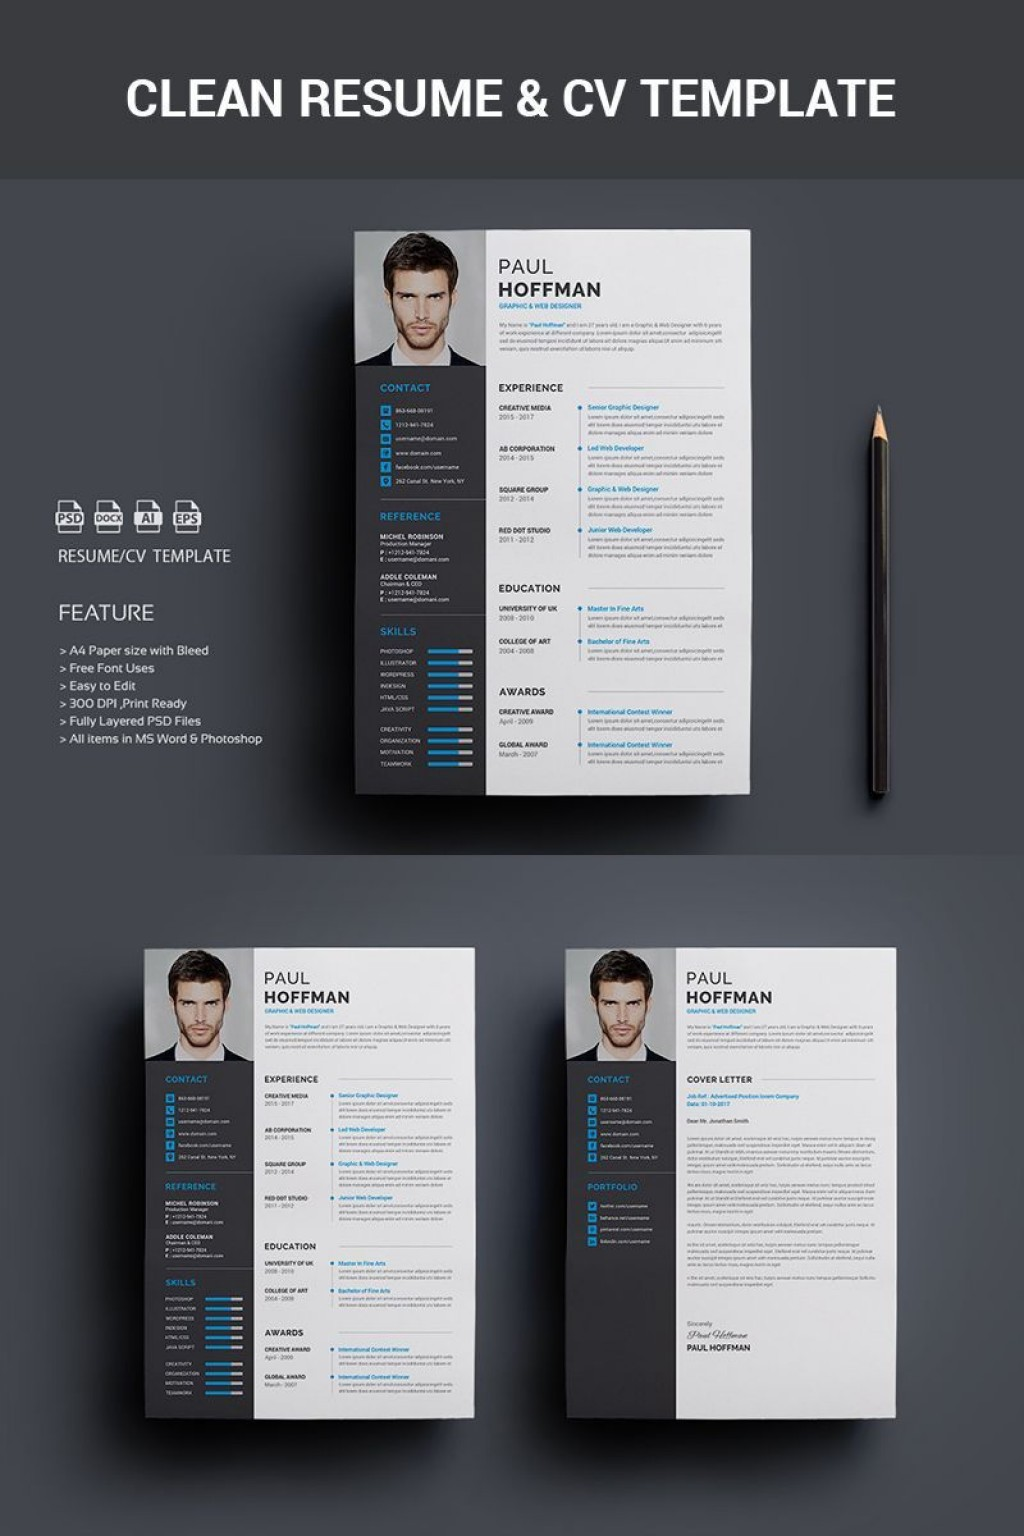 005 Archaicawful How To Create A Resume Template In Photoshop Image Large